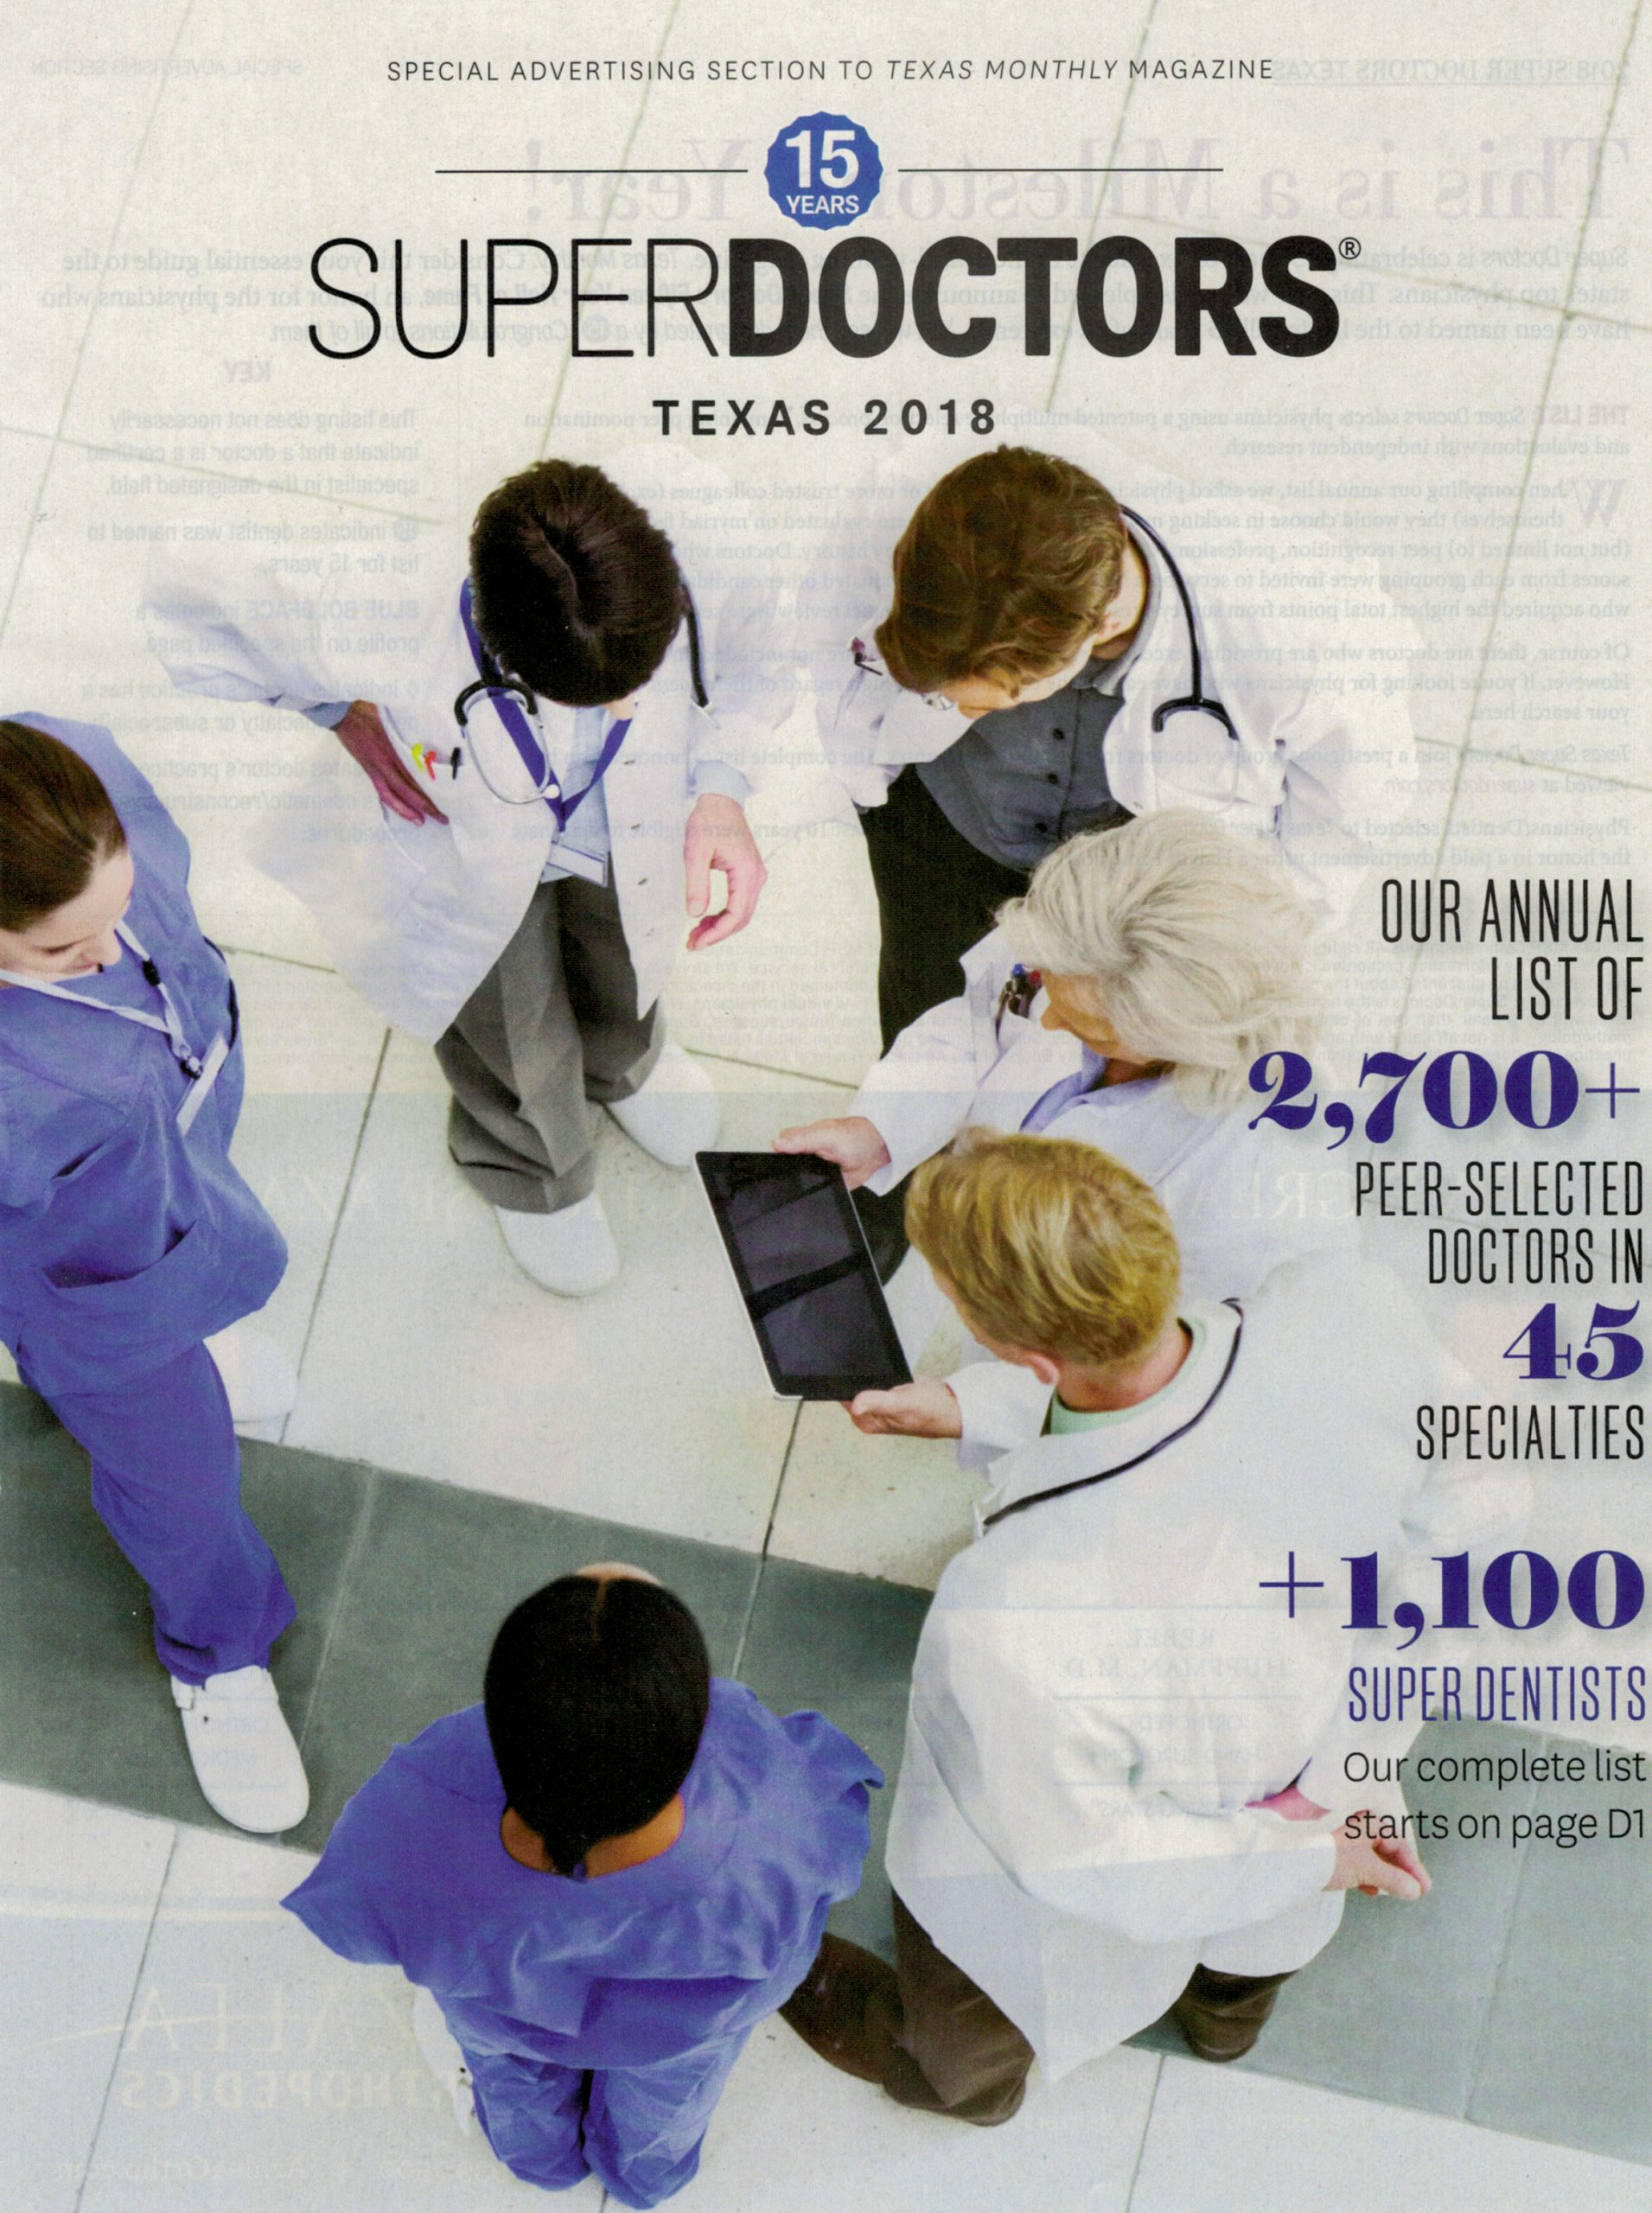 Super Doctor Award